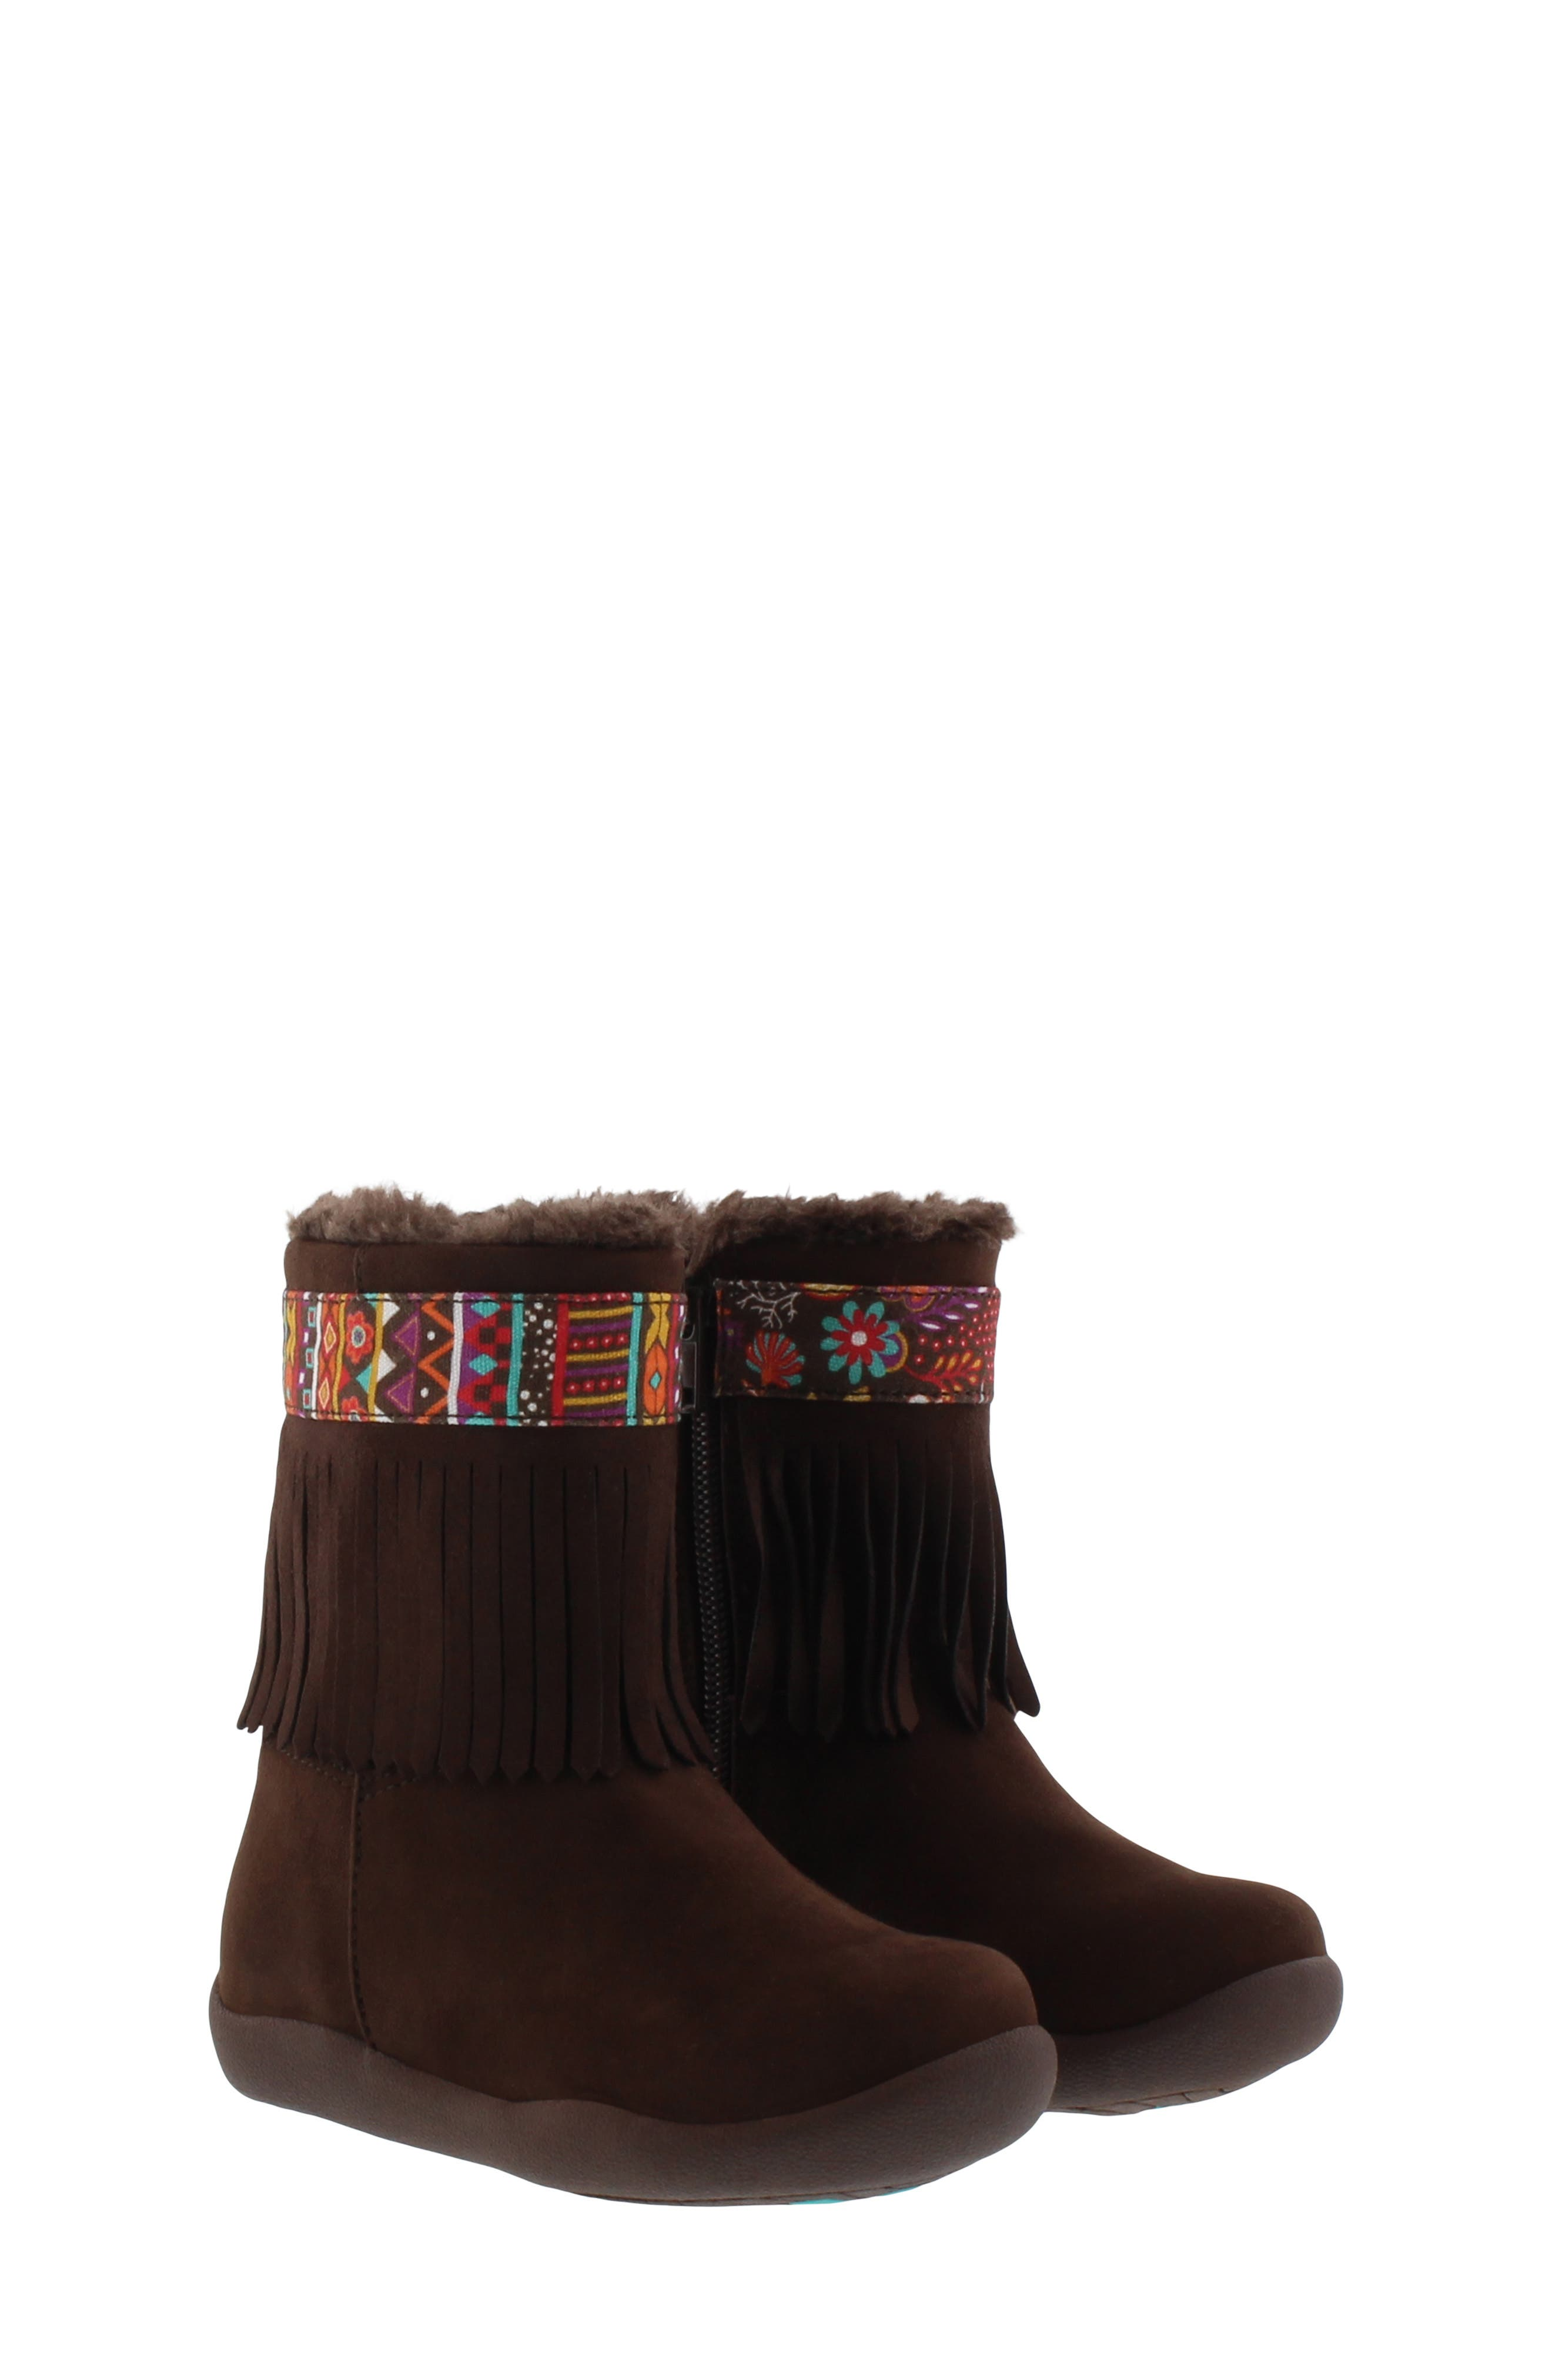 CHOOZE, Faux Fur Fringed Hope Bootie, Main thumbnail 1, color, BROWN